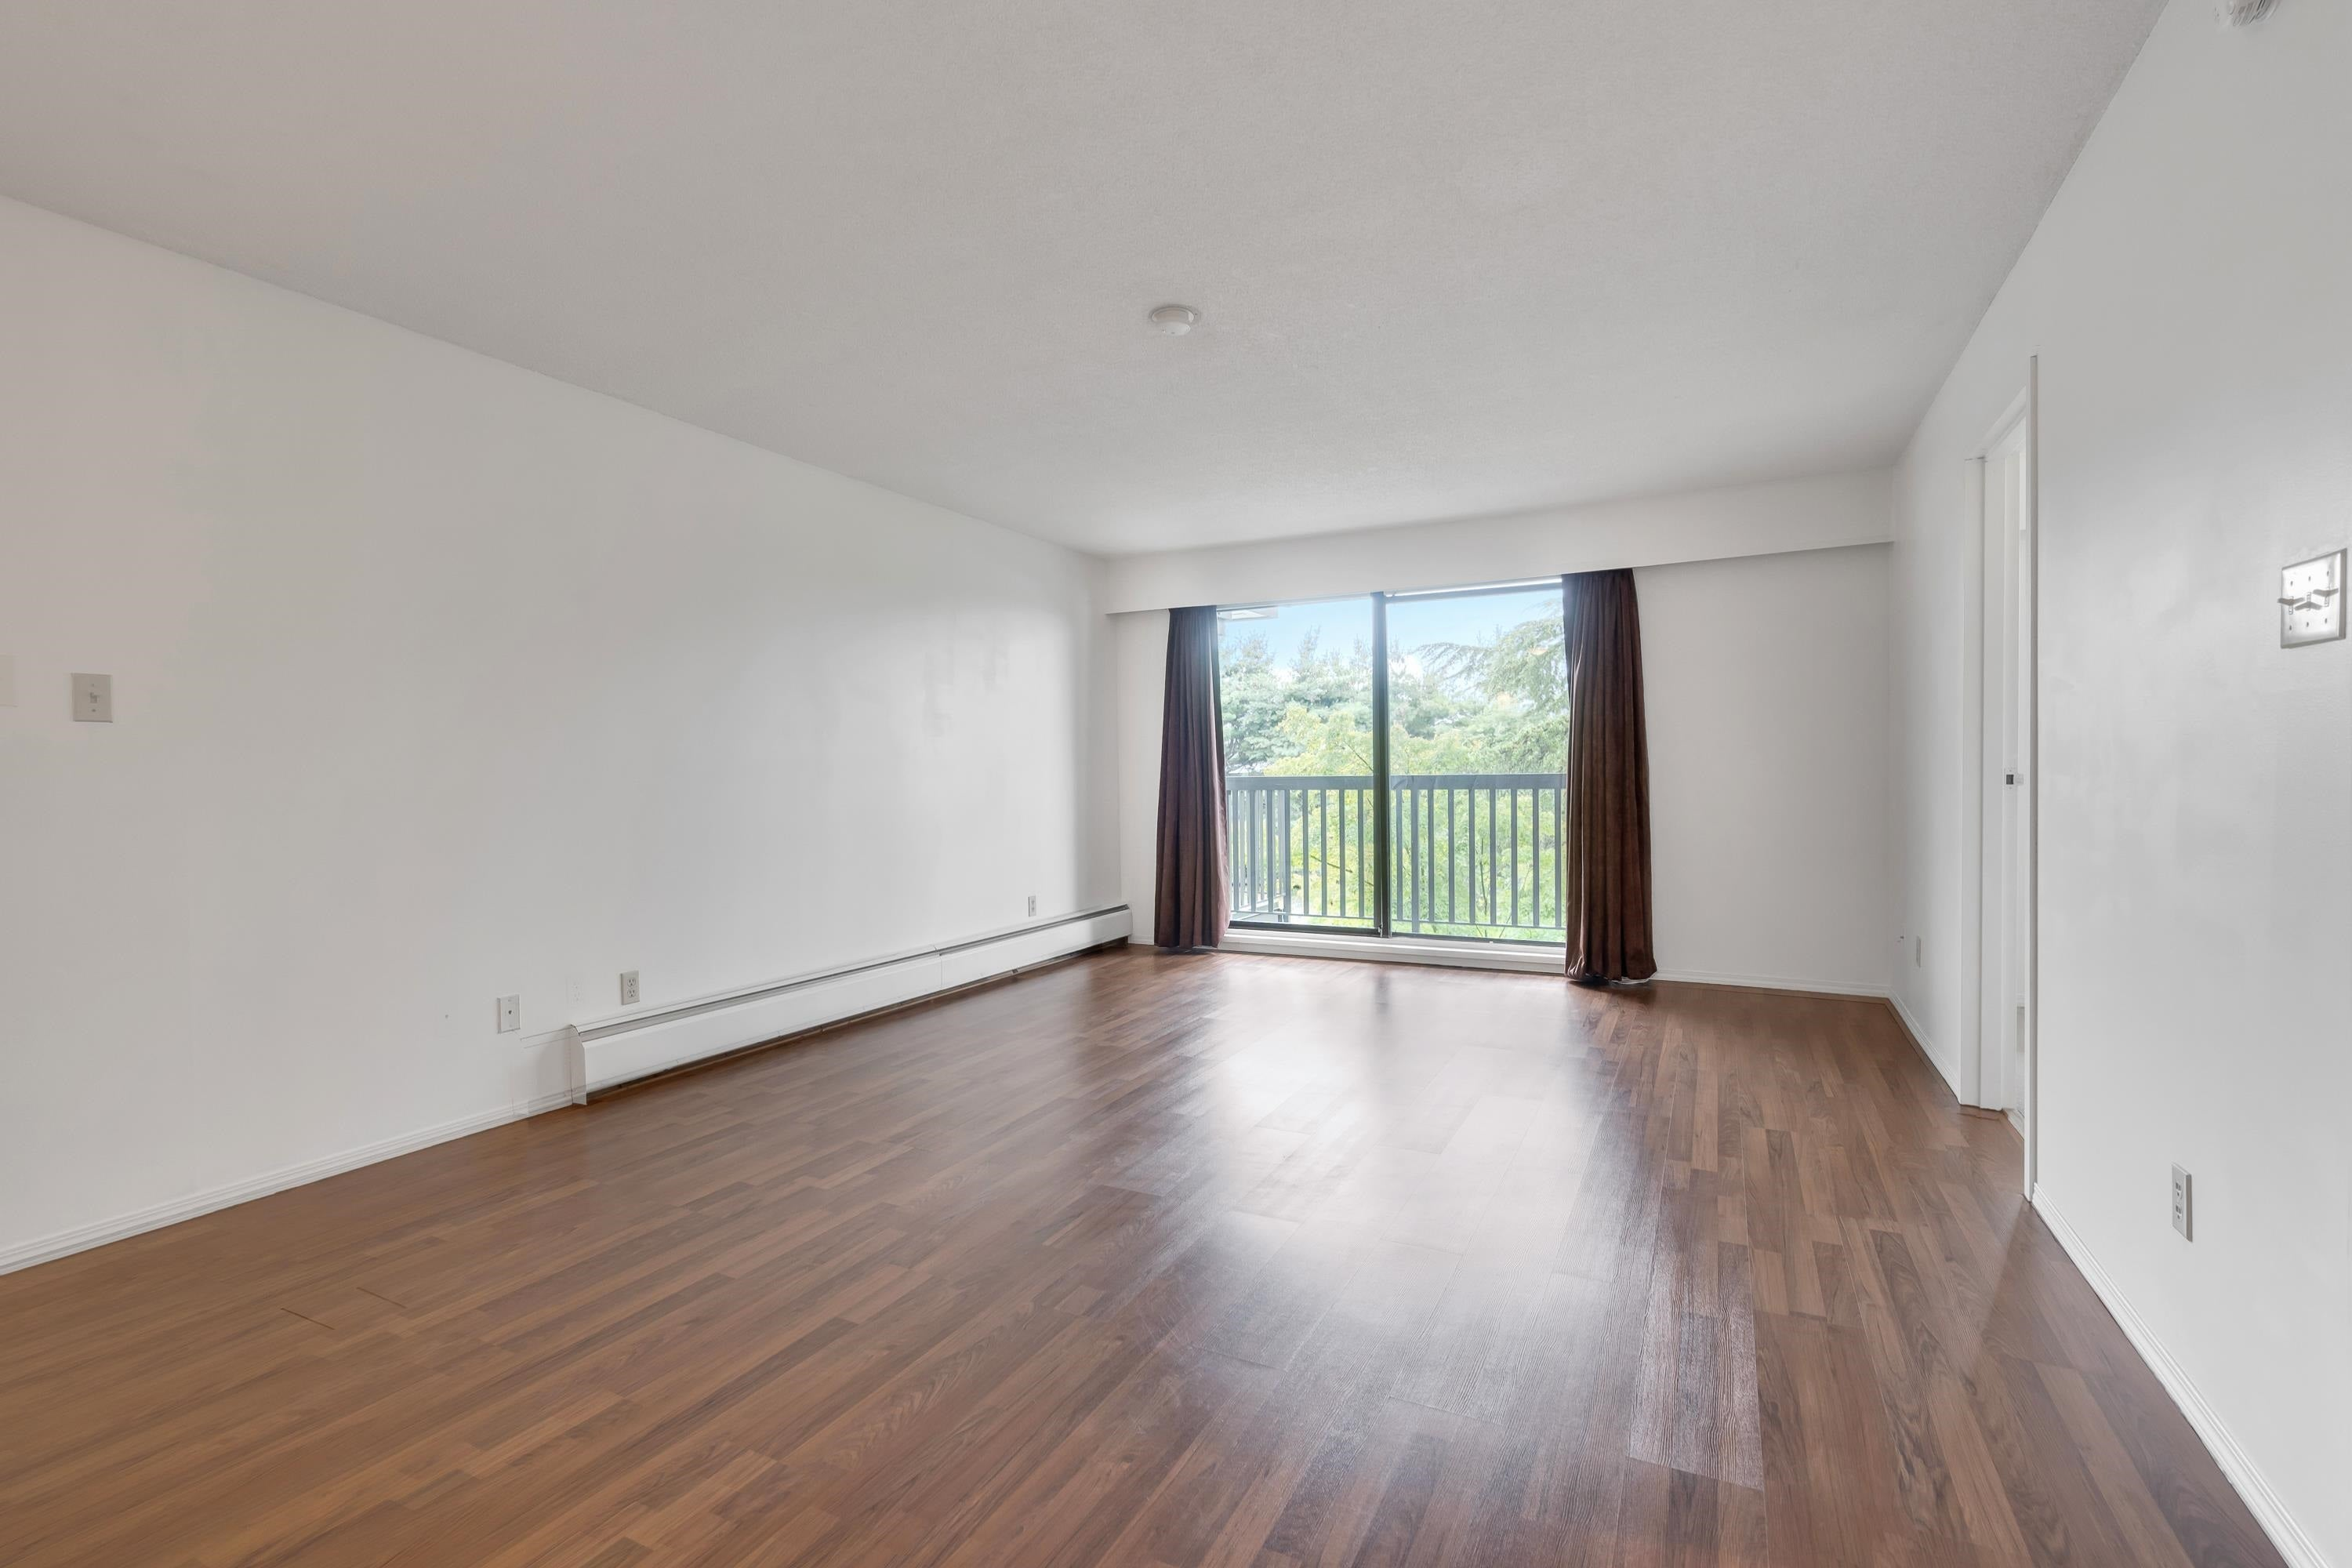 208 270 WEST 3RD STREET - Lower Lonsdale Apartment/Condo for sale, 1 Bedroom (R2615758) - #6